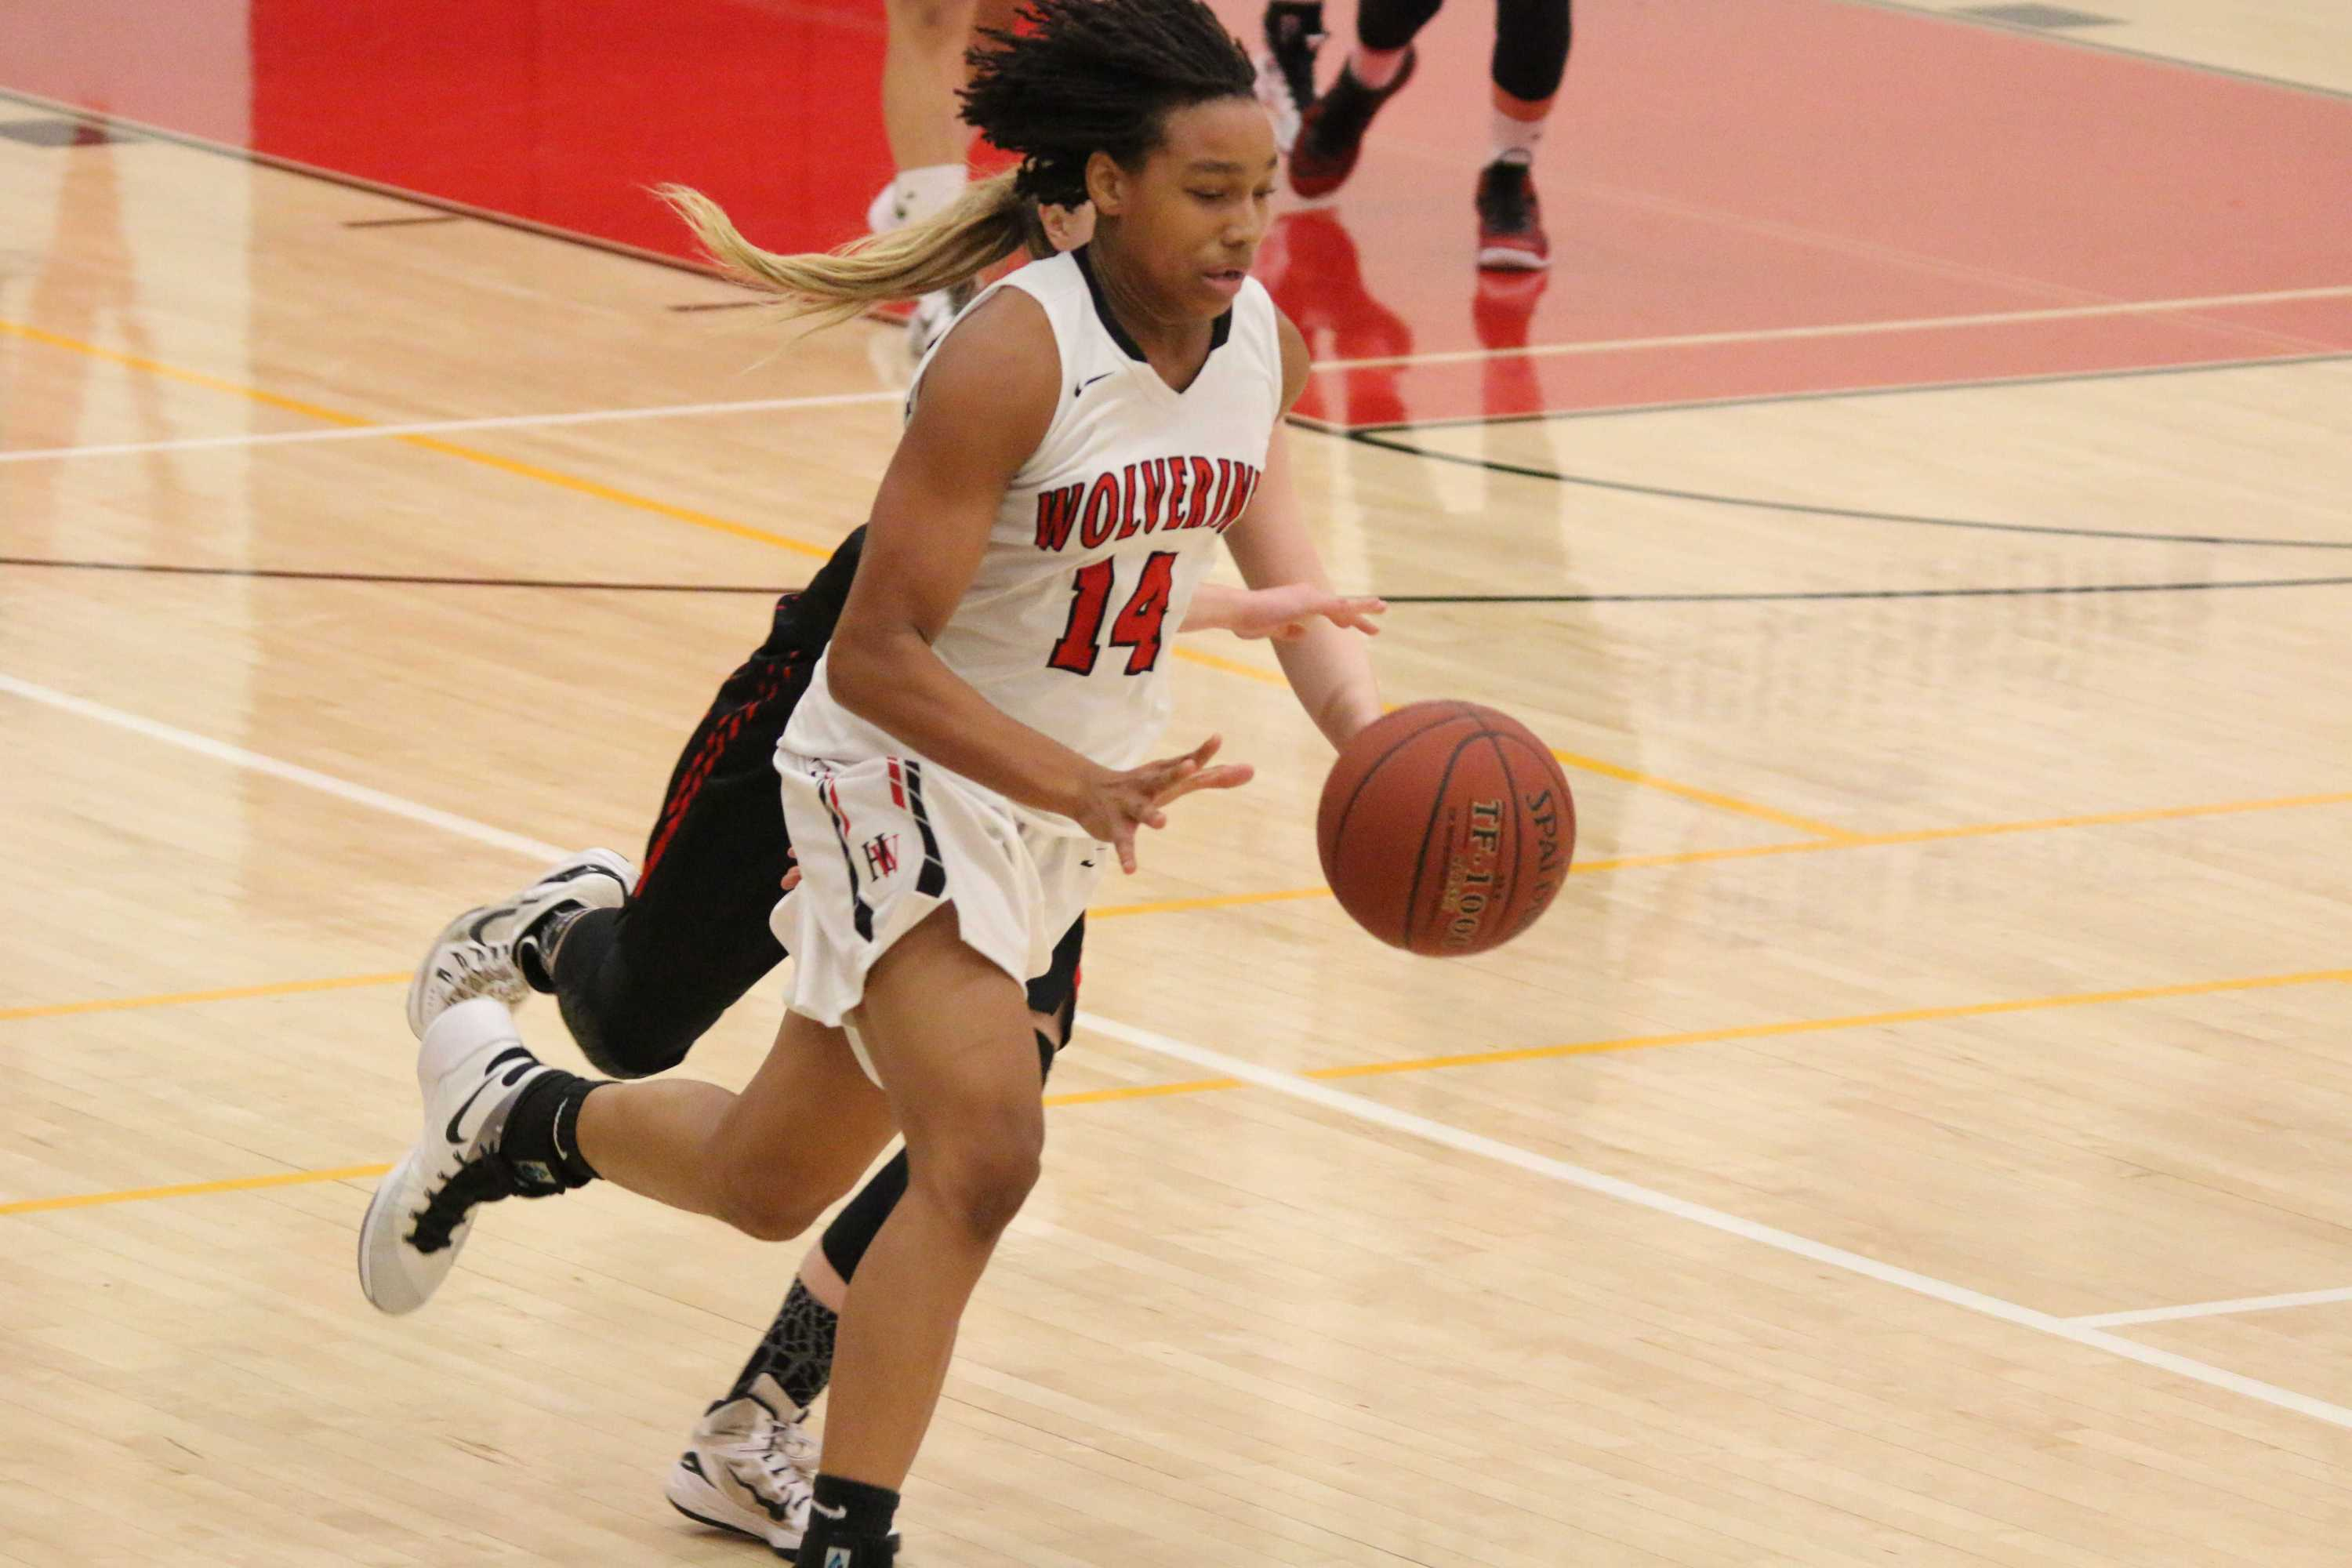 Jayla Ruffis-milner dribbles past an opponent during a game. Credit: Pavan Tauh/Big Red